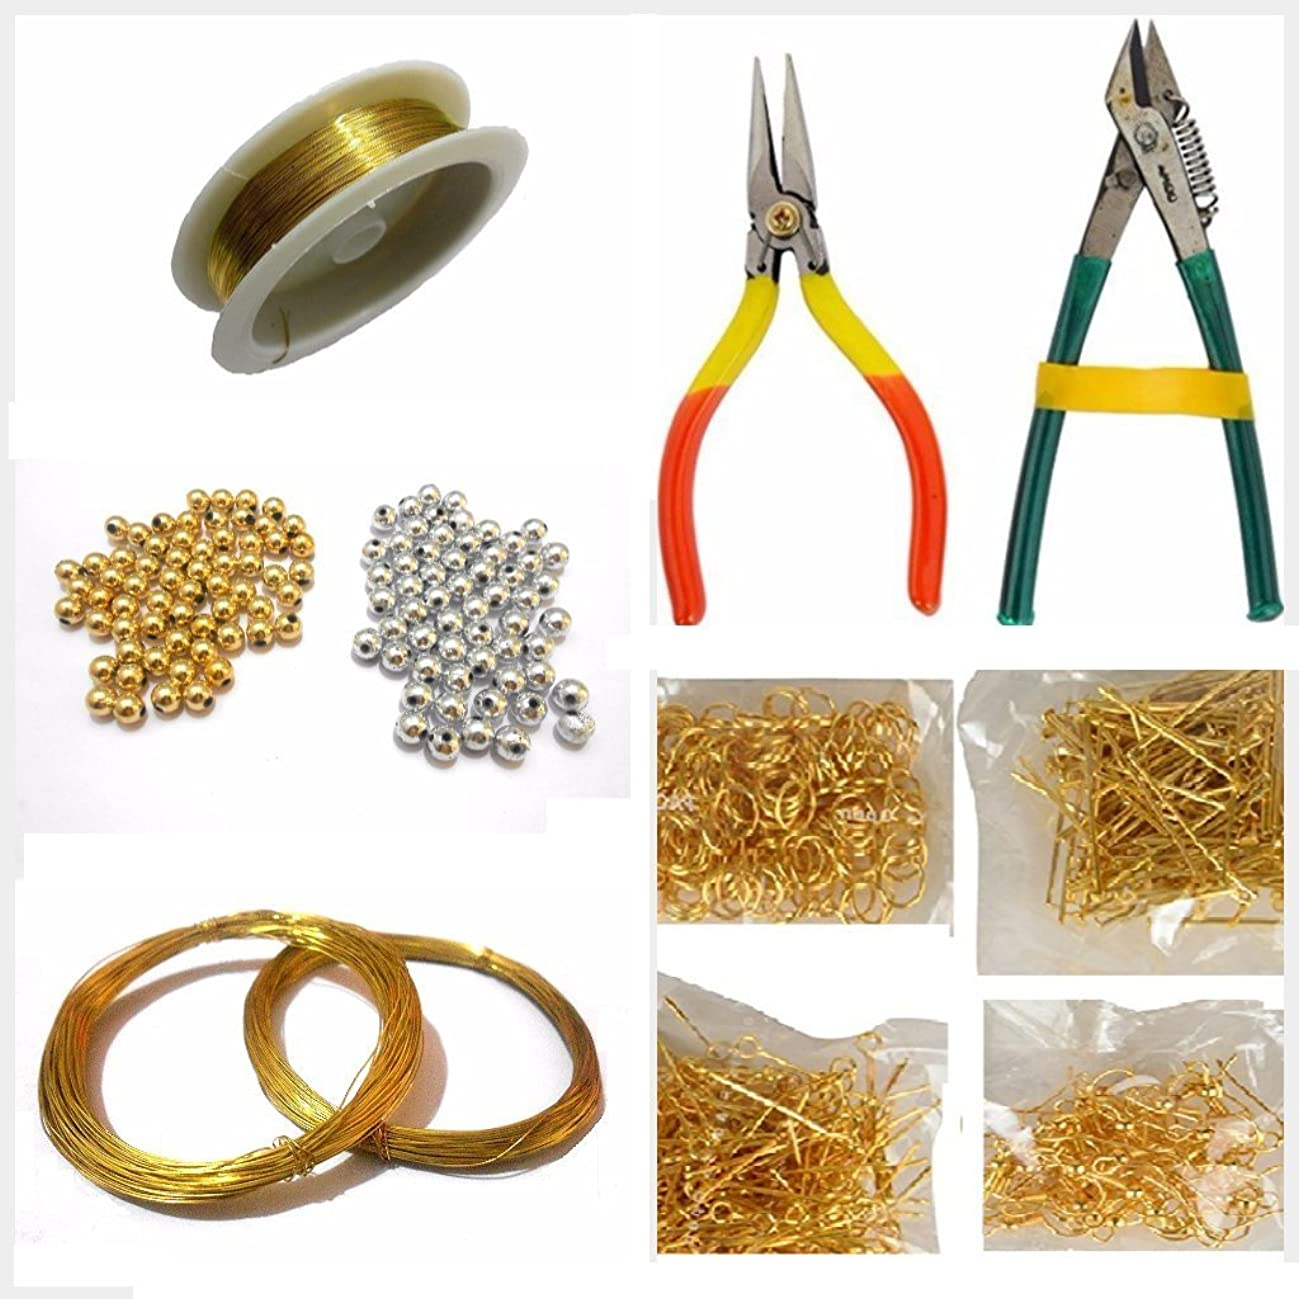 GOELX Jewellery Making Basic Accessories Finding Tool Kit With Multiple Items- Wire, Tools, Beads